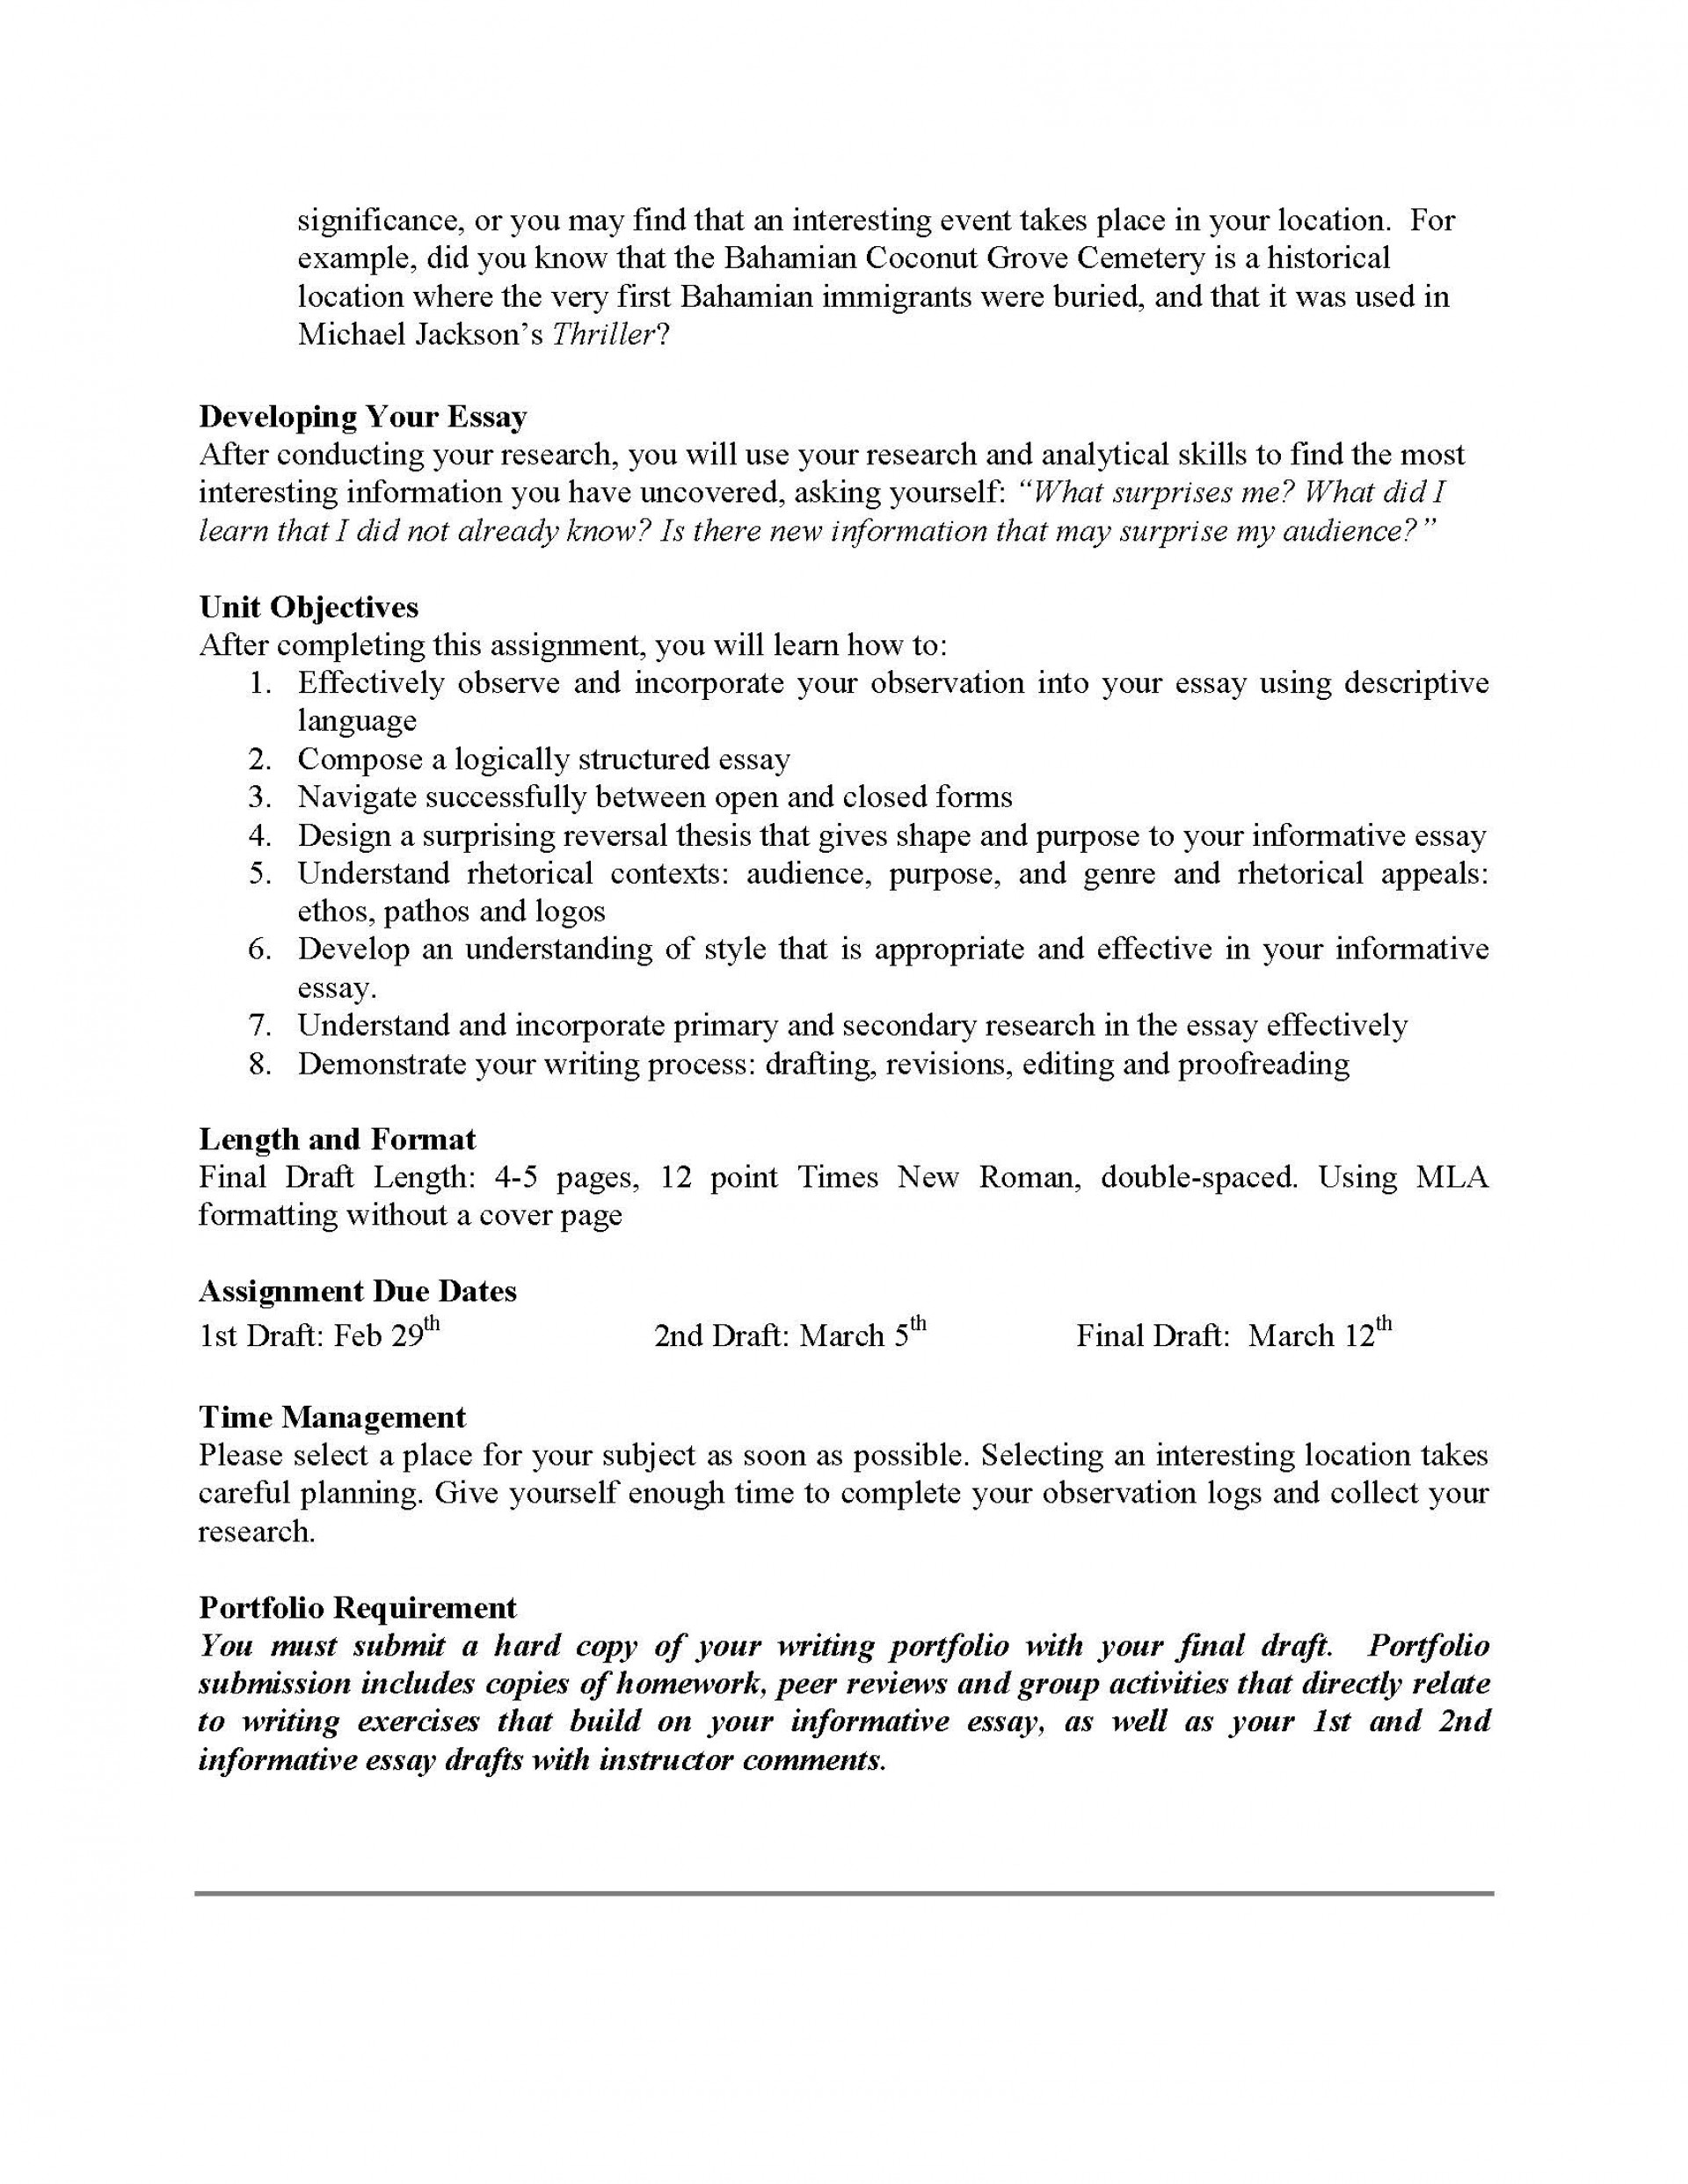 011 Informative Essay Unit Assignment Page 2 Example Outstanding Definition 1920